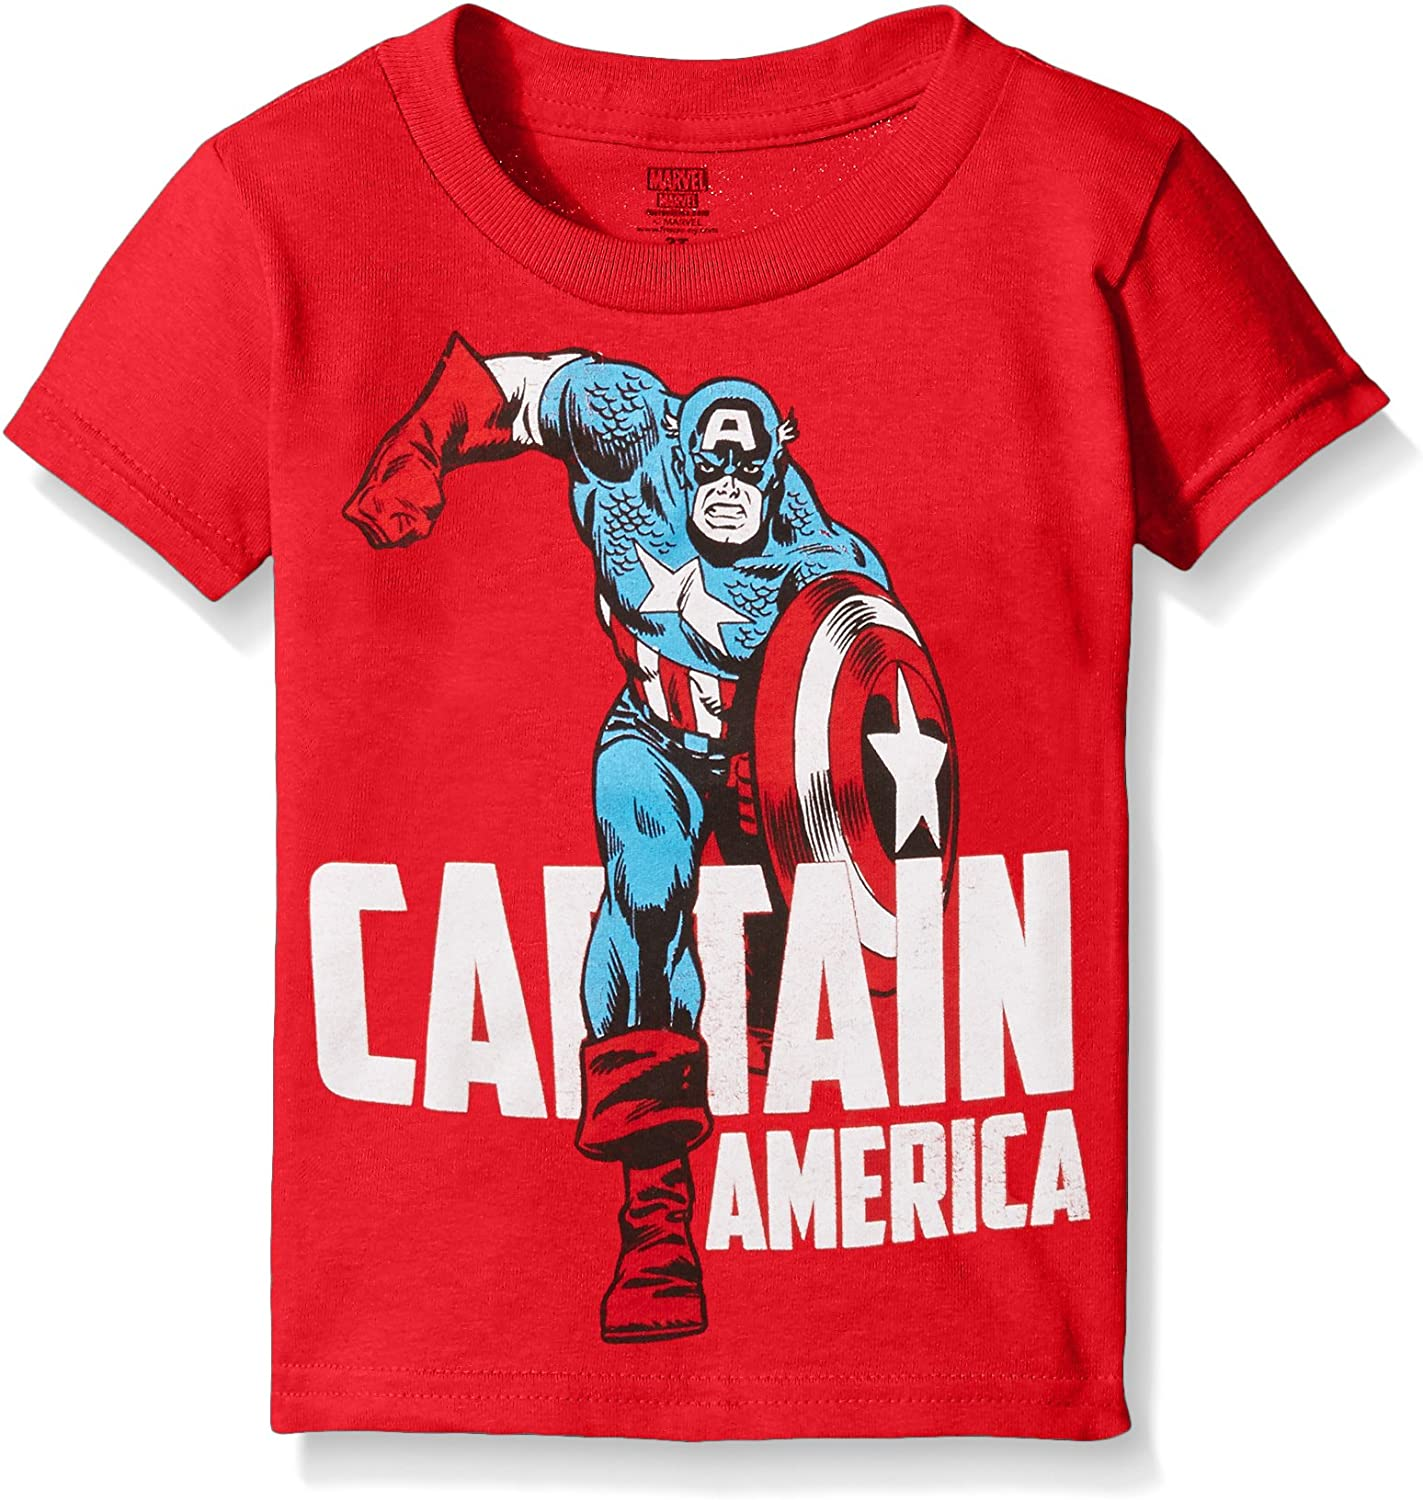 Boys Captain America T Shirt Size 10-12 Large Superhero Glows in the Dark New